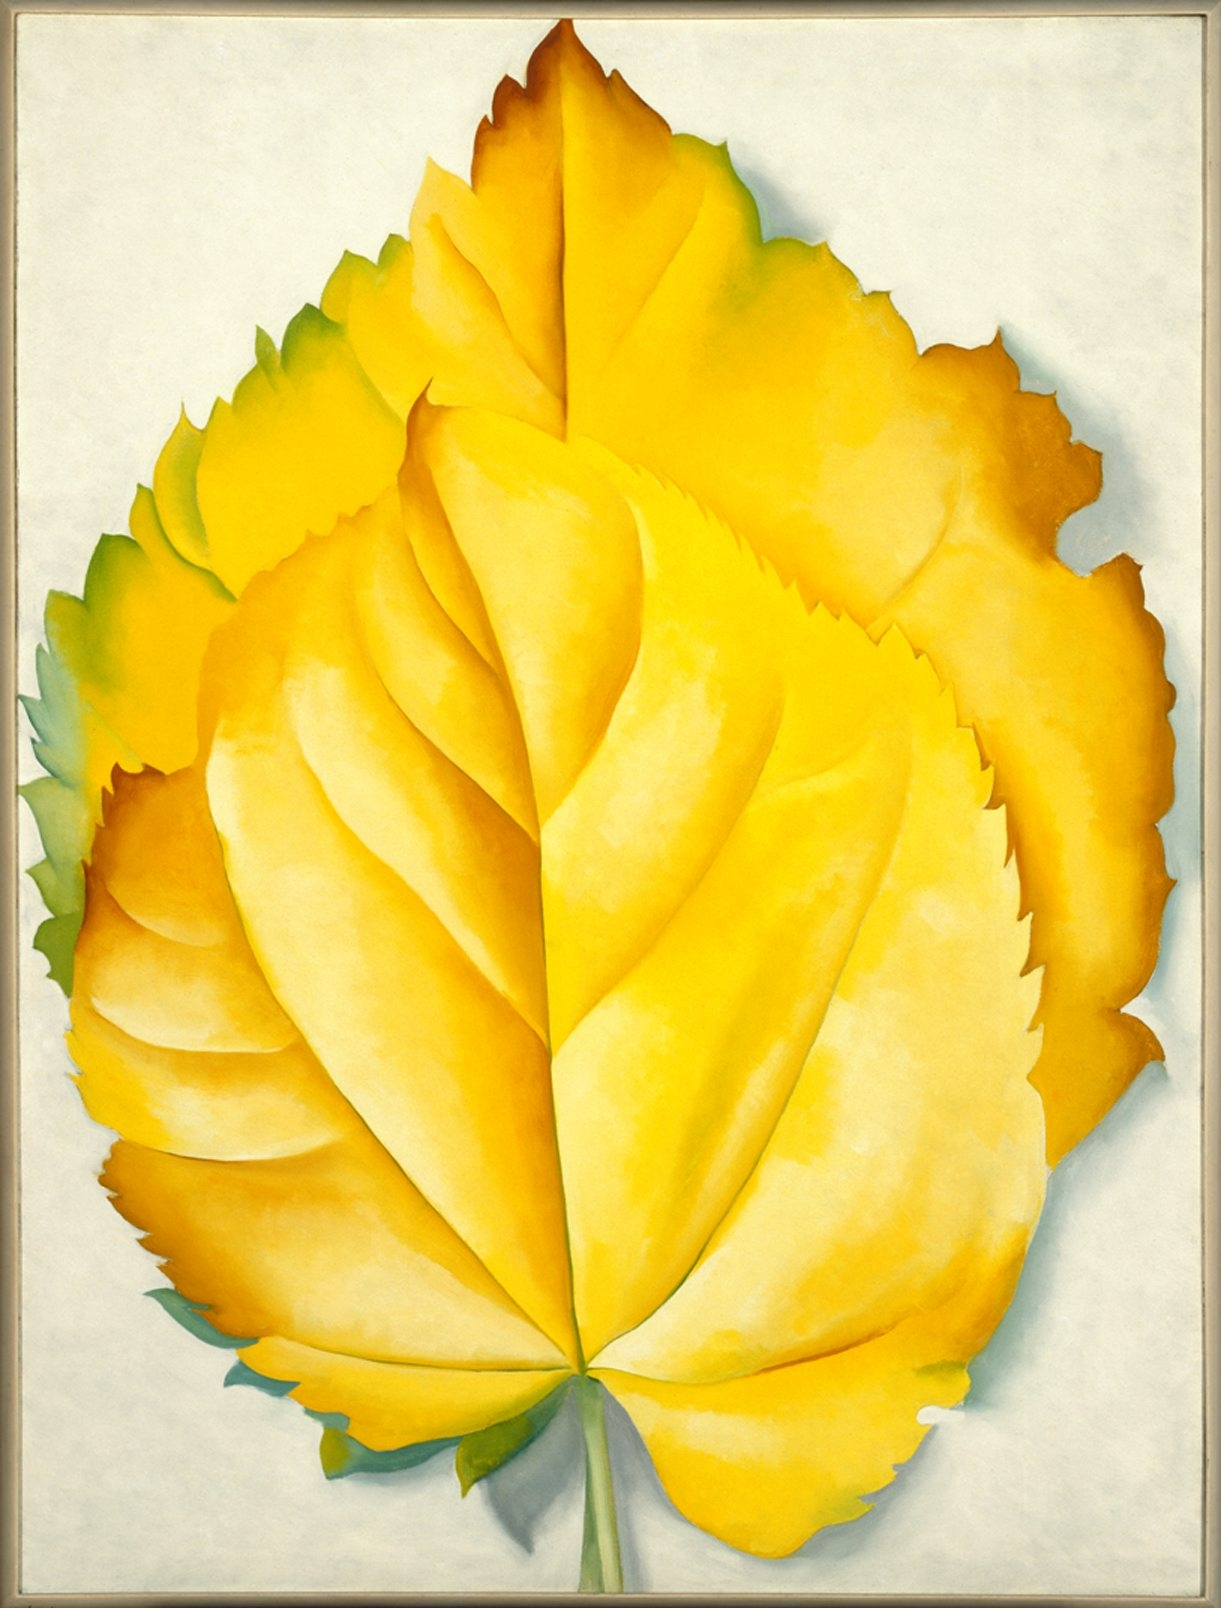 """""""Yellow Leaves,"""" a 1928 painting by Georgia O'Keeffe that shows her turn away from abstraction and toward her signature style of outsized studies of nature, has a prized place in """"American Moderns."""""""